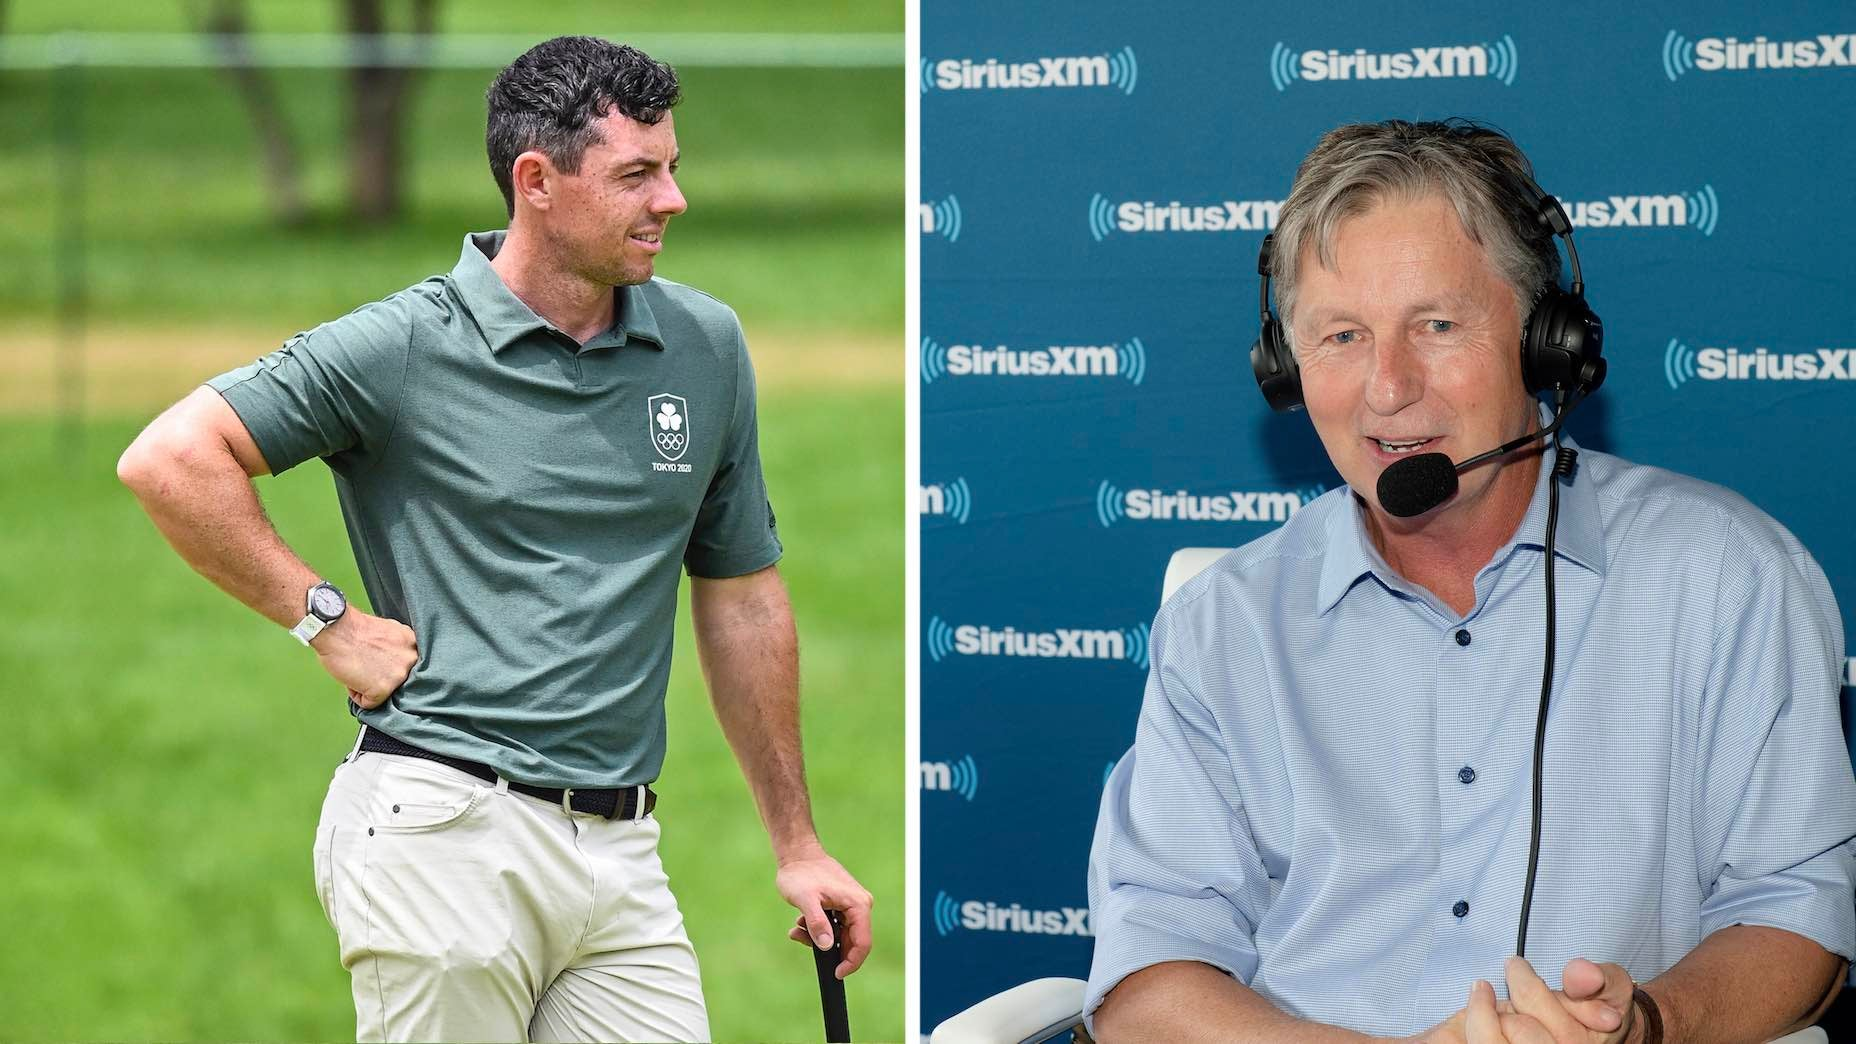 Rory McIlroy and Brandel Chamblee are worried about the ill effects of social media.